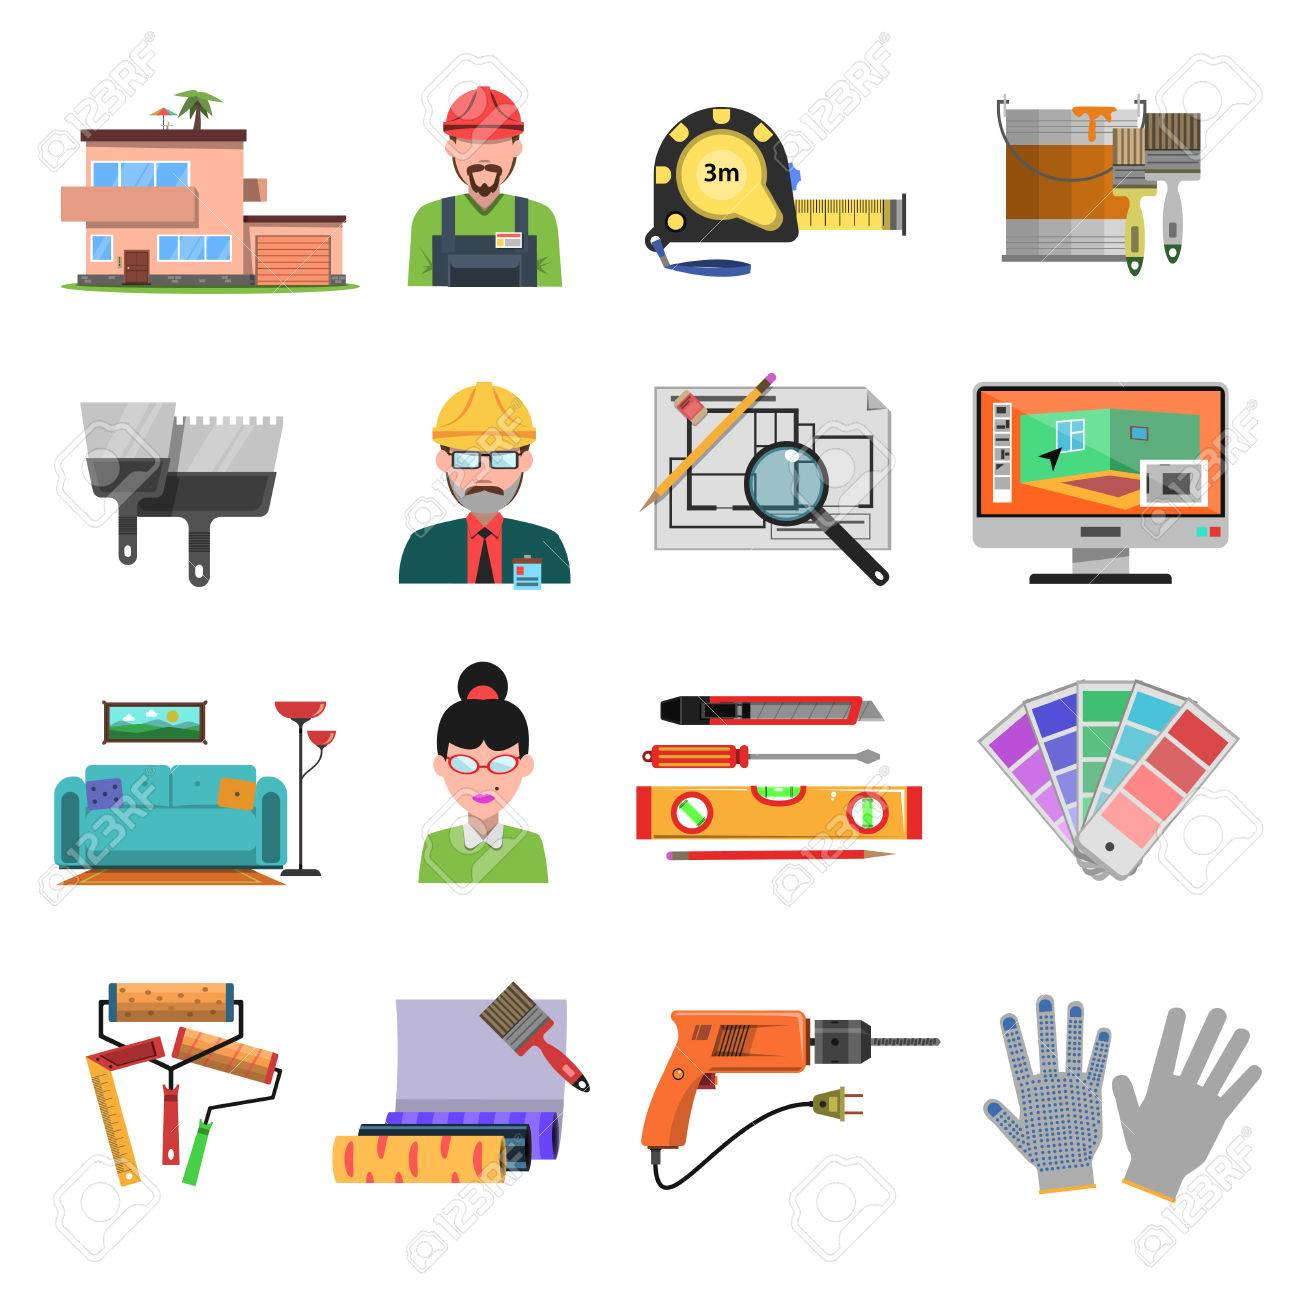 Interior Design Flat Icons With Designer And Architecture Tools Isolated  Vector Illustration Stock Vector   42462297